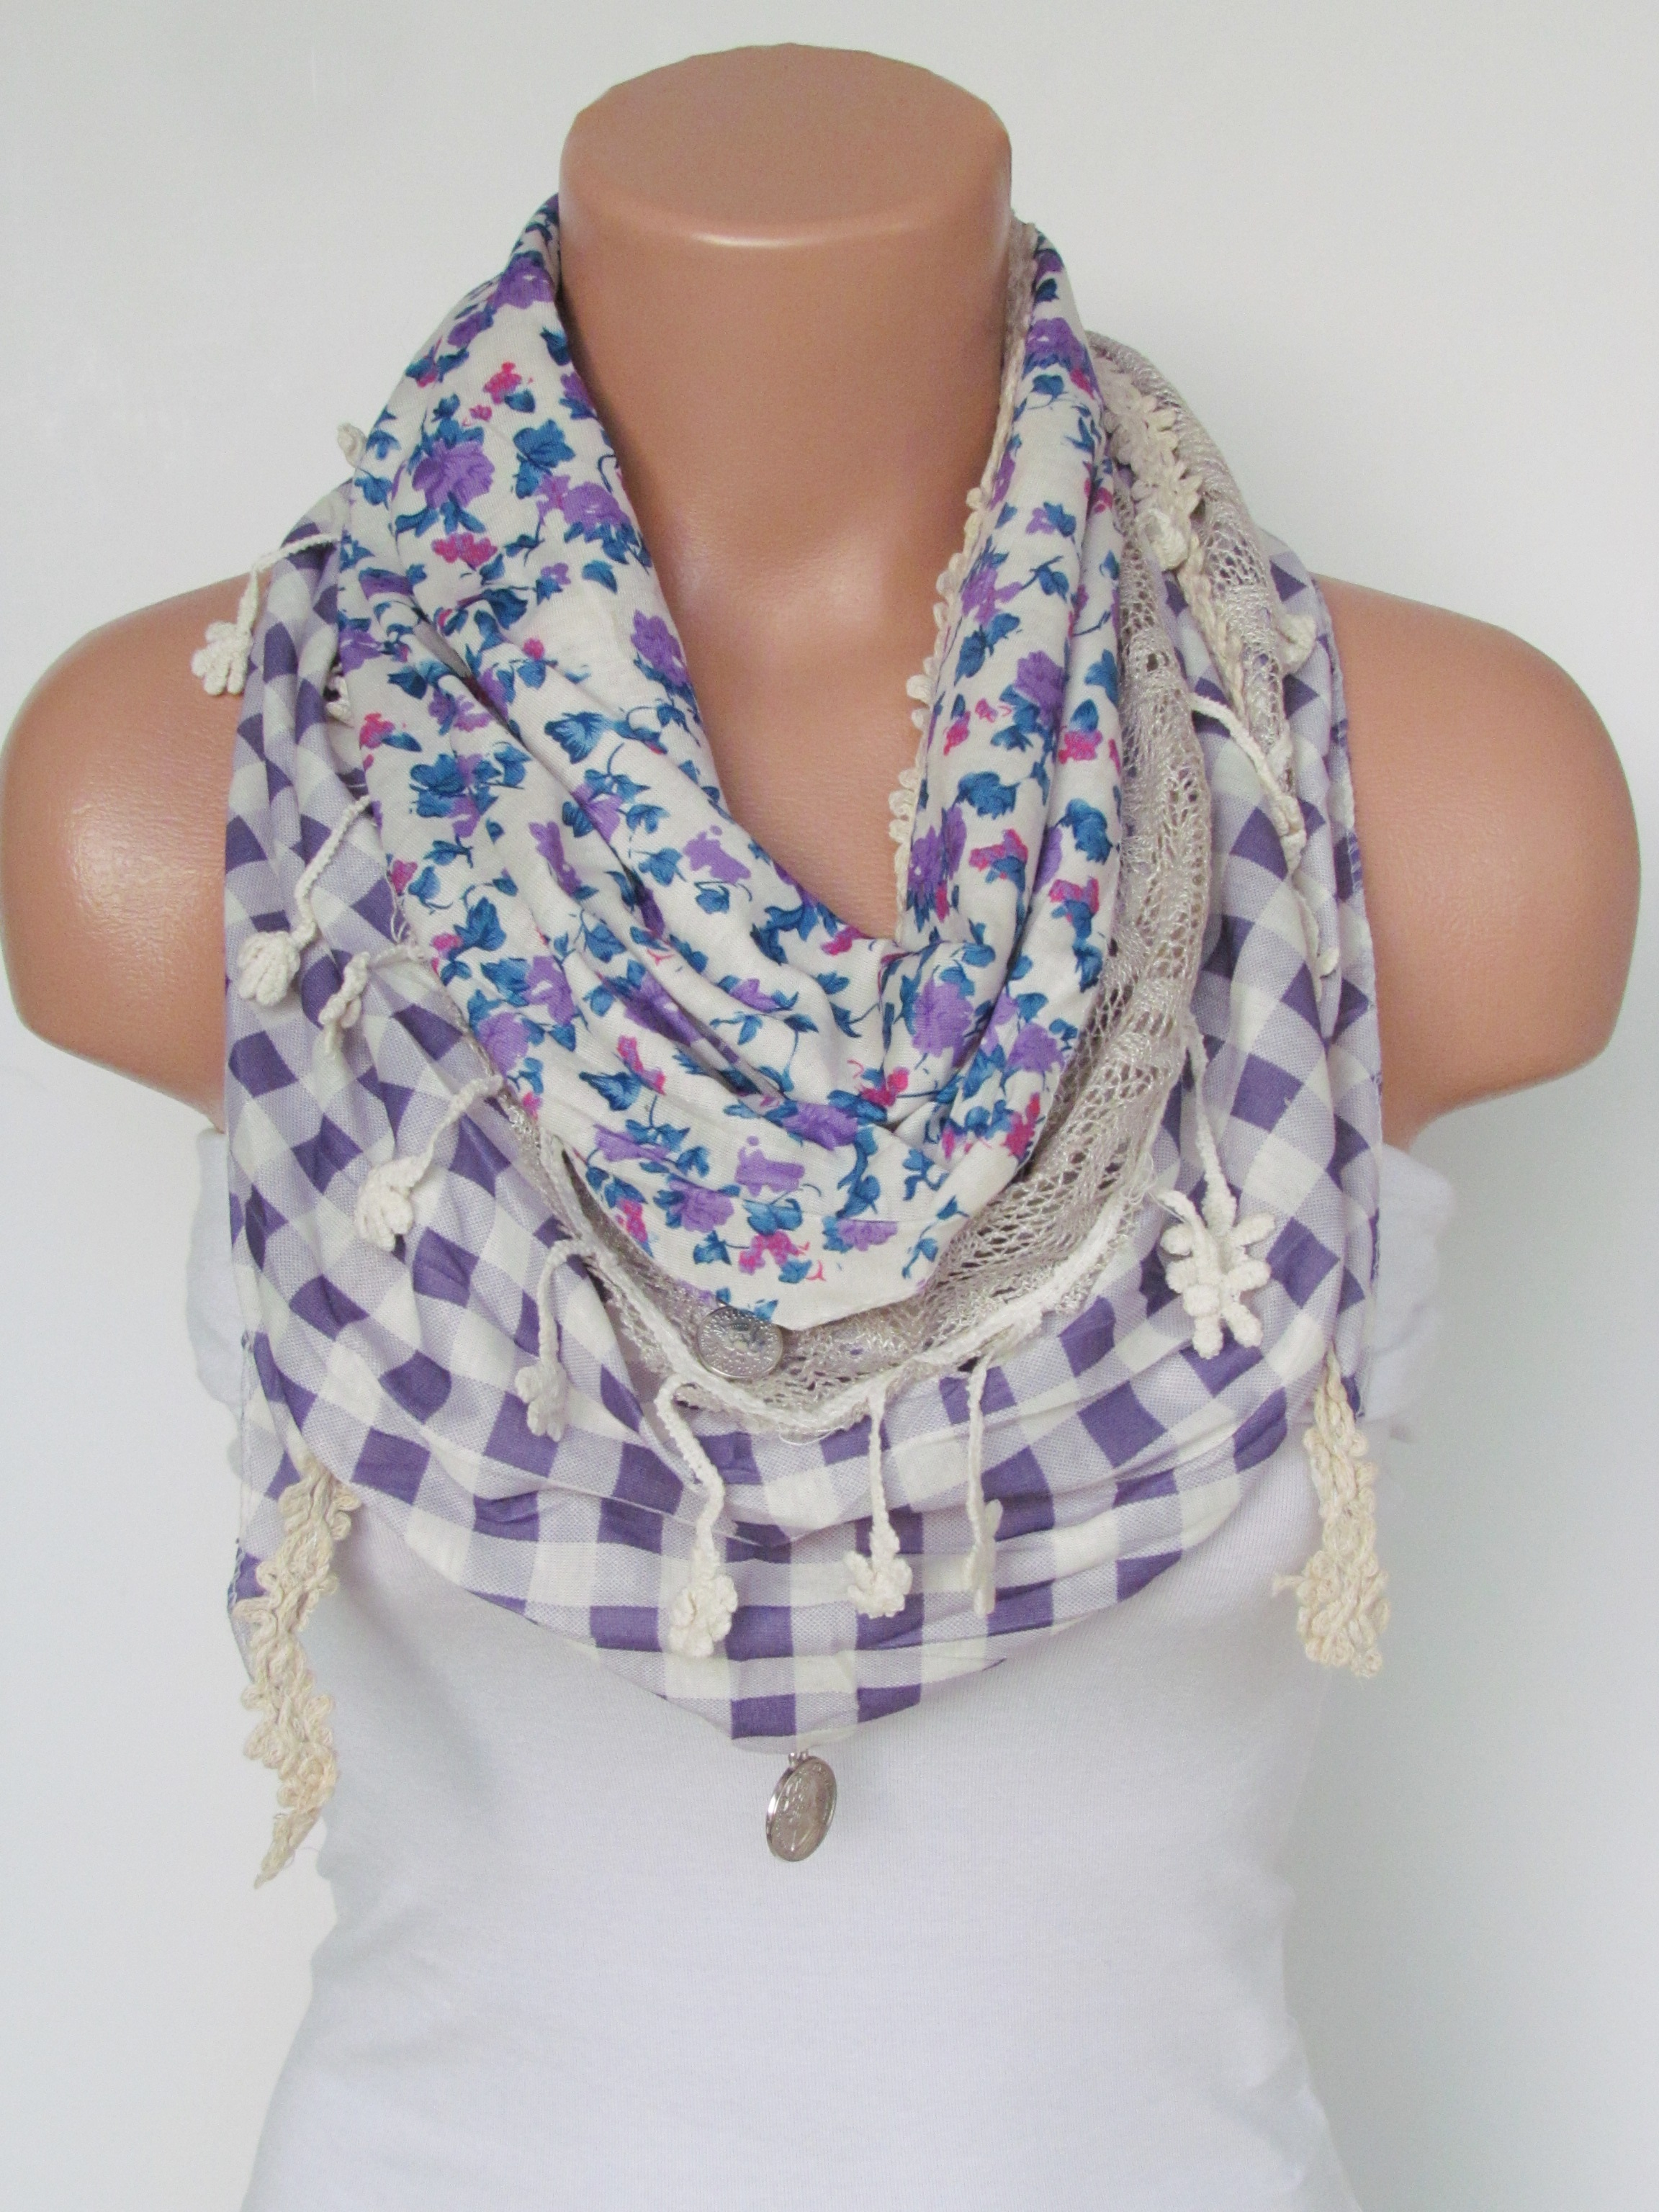 a97c9d8c66531 Triangle Scarf with fringe and lace-Winter Shawl Scarf-Winter Fashion-Lace  Scarf-Necklace-Pashmina Scarf- Stone Lilac Cream